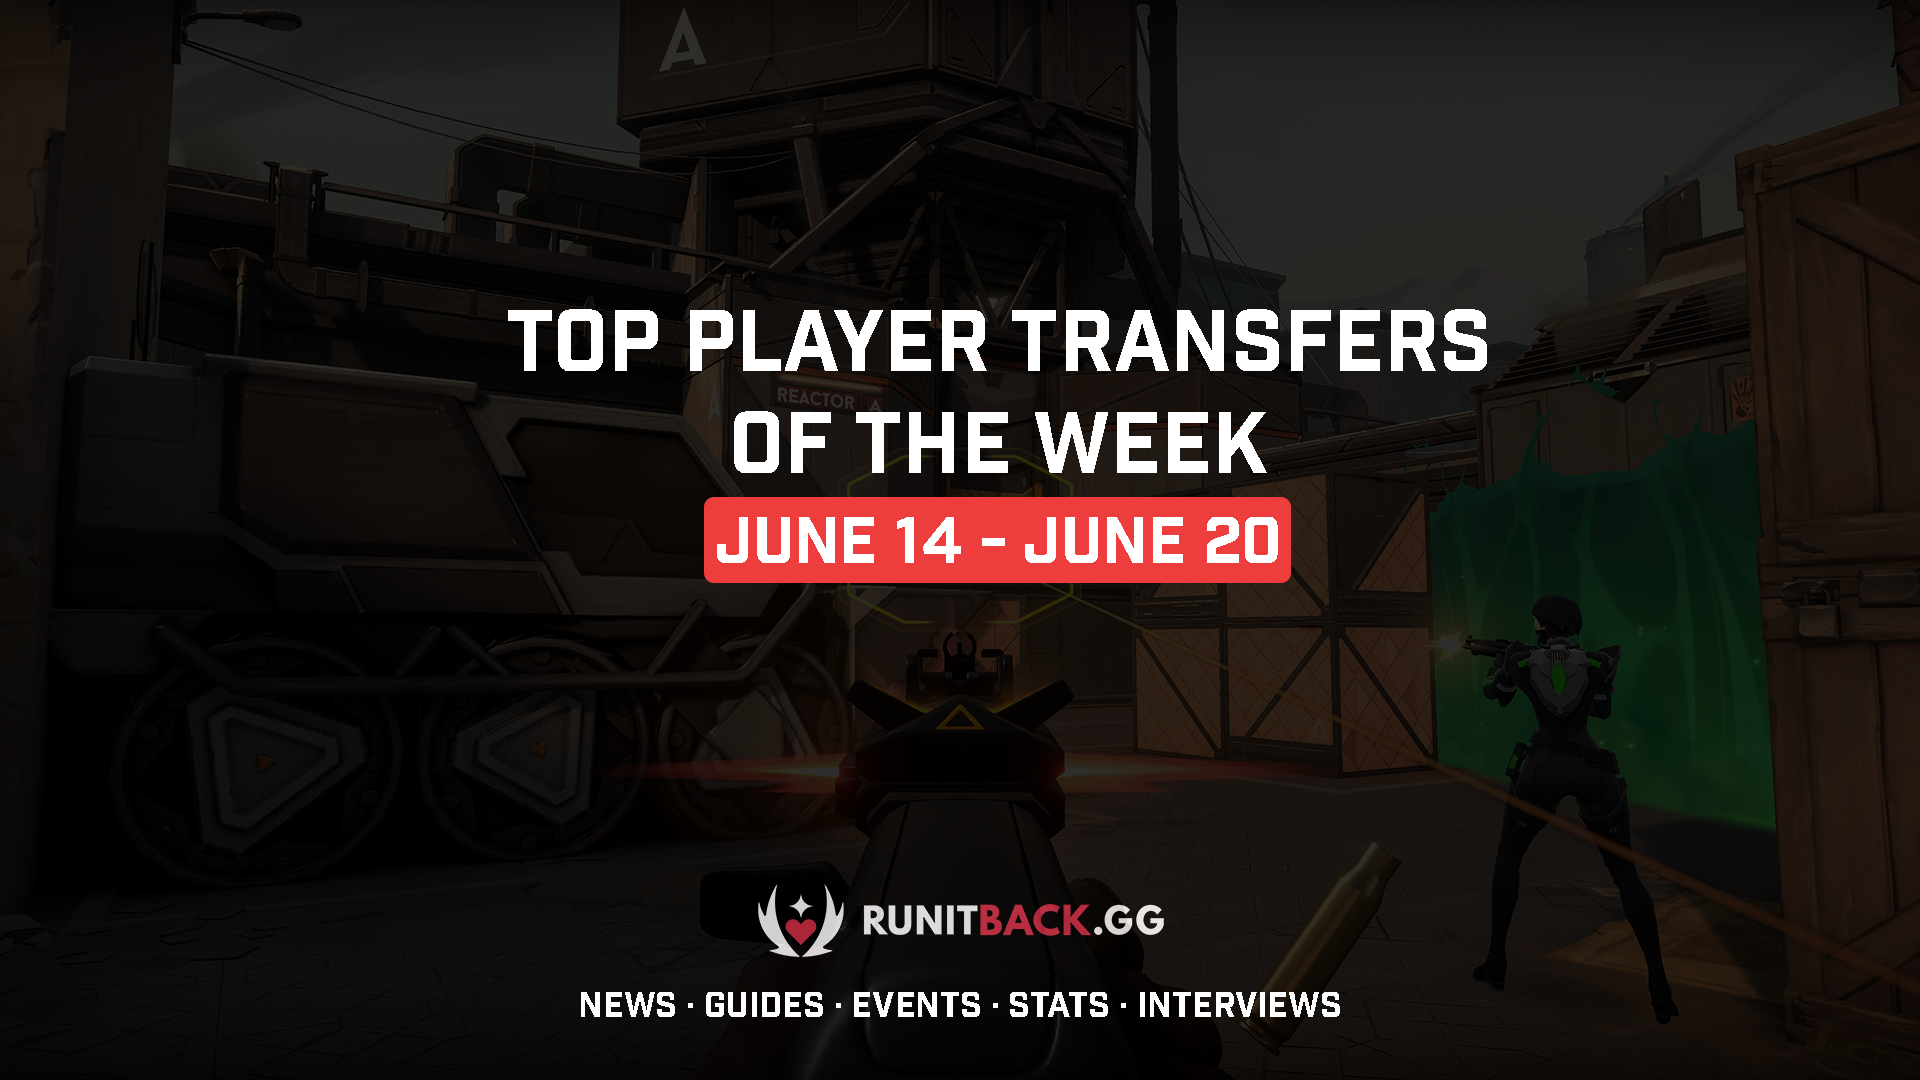 Top Player Transfers of the Week 6/14-6/20